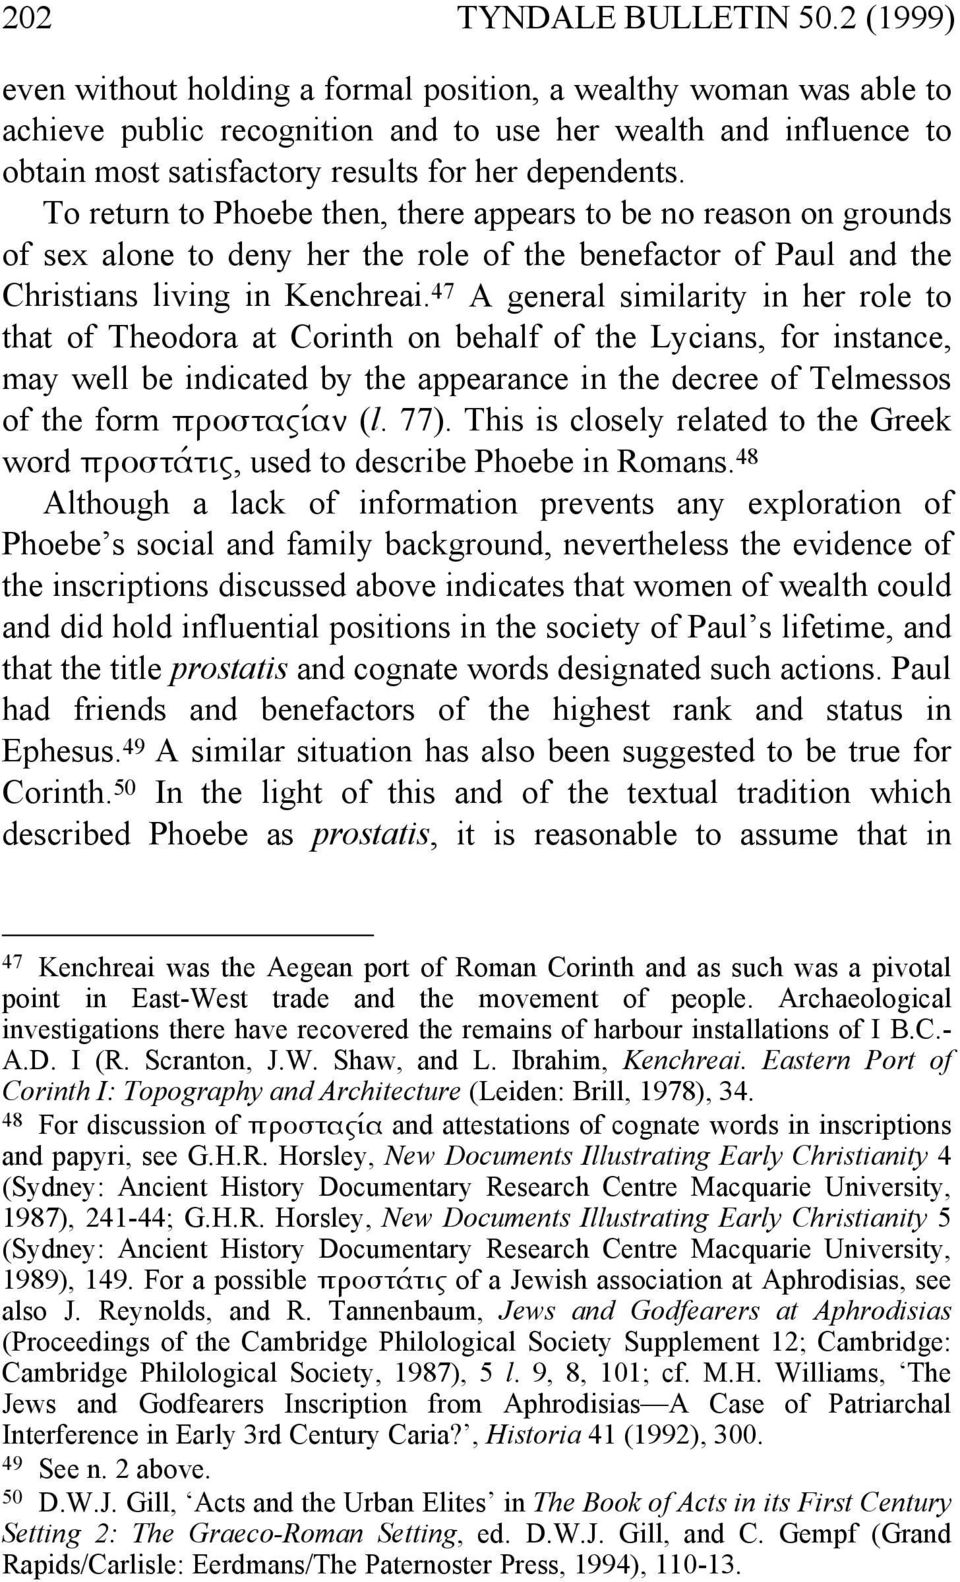 To return to Phoebe then, there appears to be no reason on grounds of sex alone to deny her the role of the benefactor of Paul and the Christians living in Kenchreai.